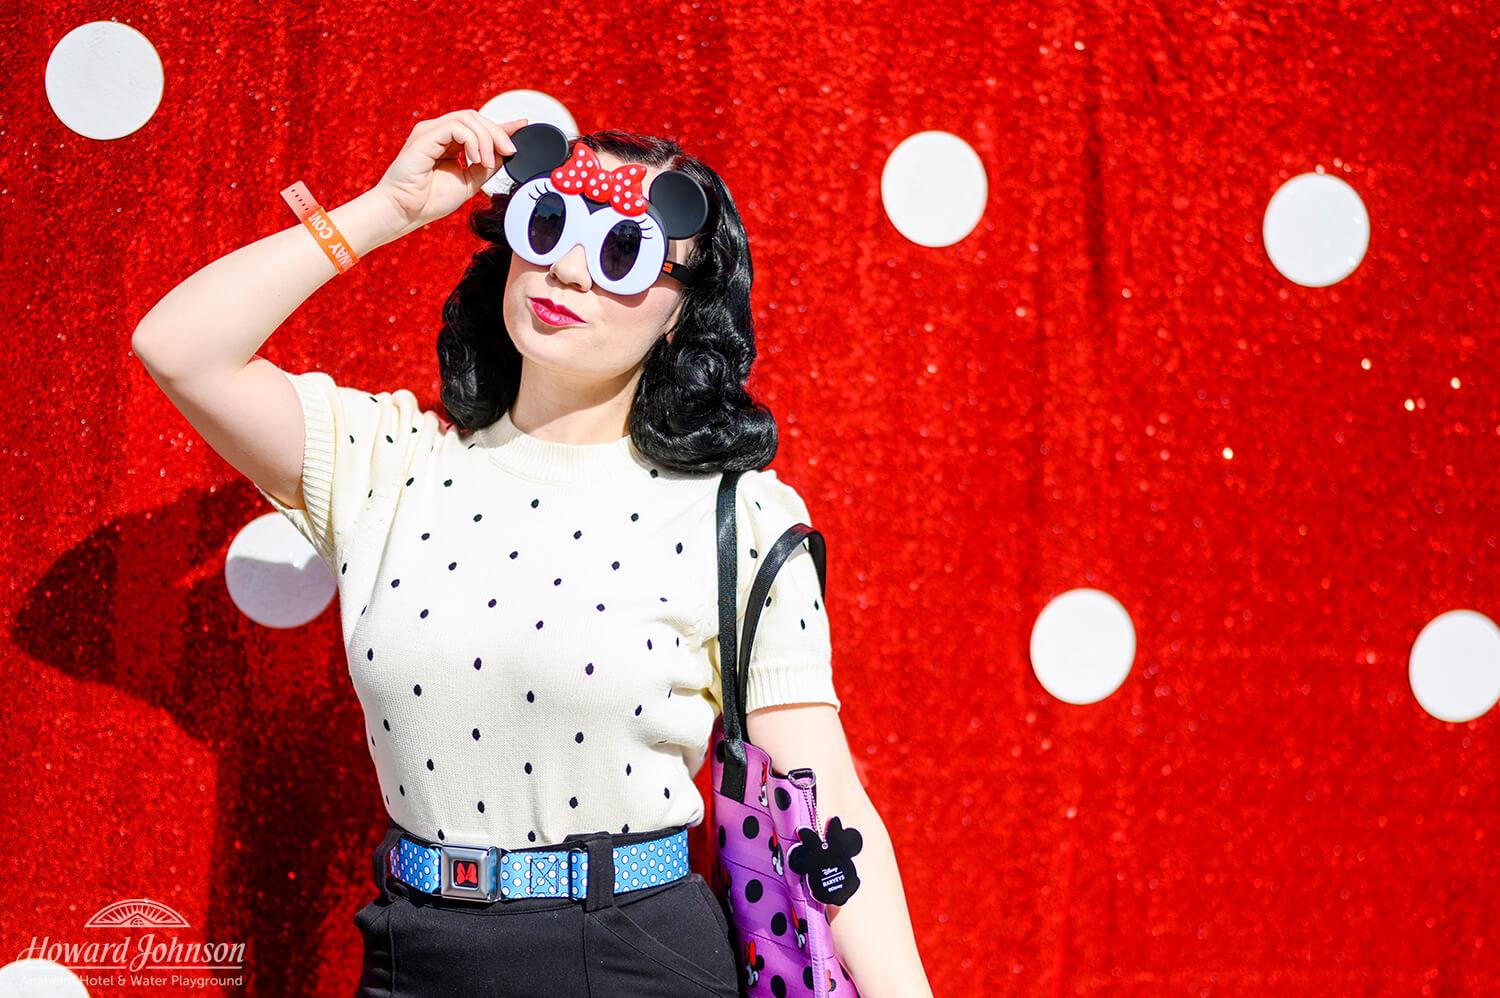 A young woman poses for a picture in front of a polka dot backdrop wearing Minnie Mouse sunglasses